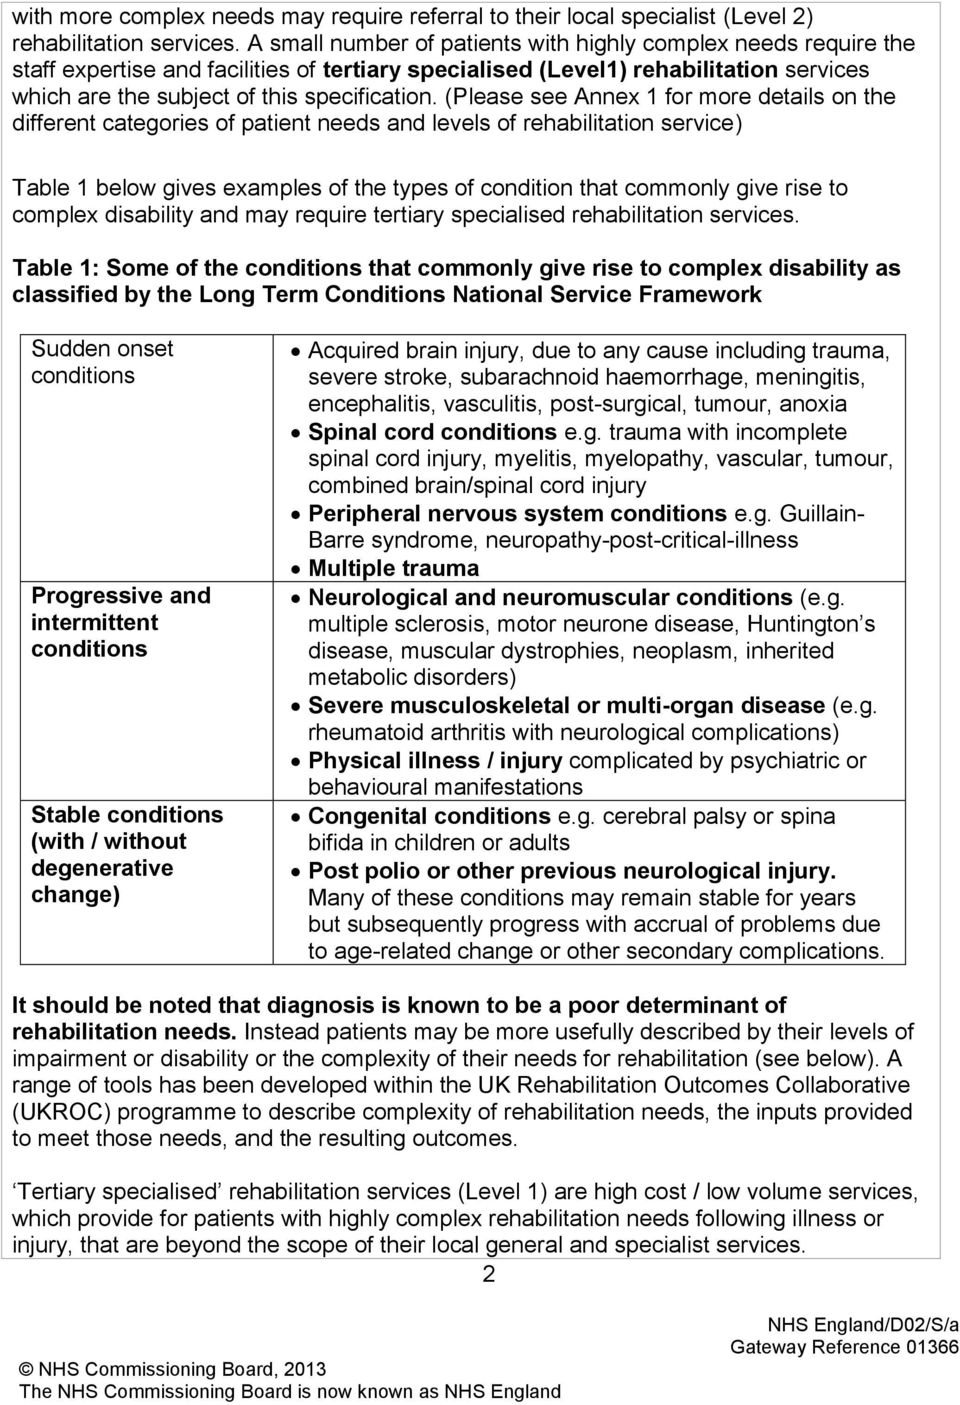 (Please see Annex 1 for more details on the different categories of patient needs and levels of rehabilitation service) Table 1 below gives examples of the types of condition that commonly give rise